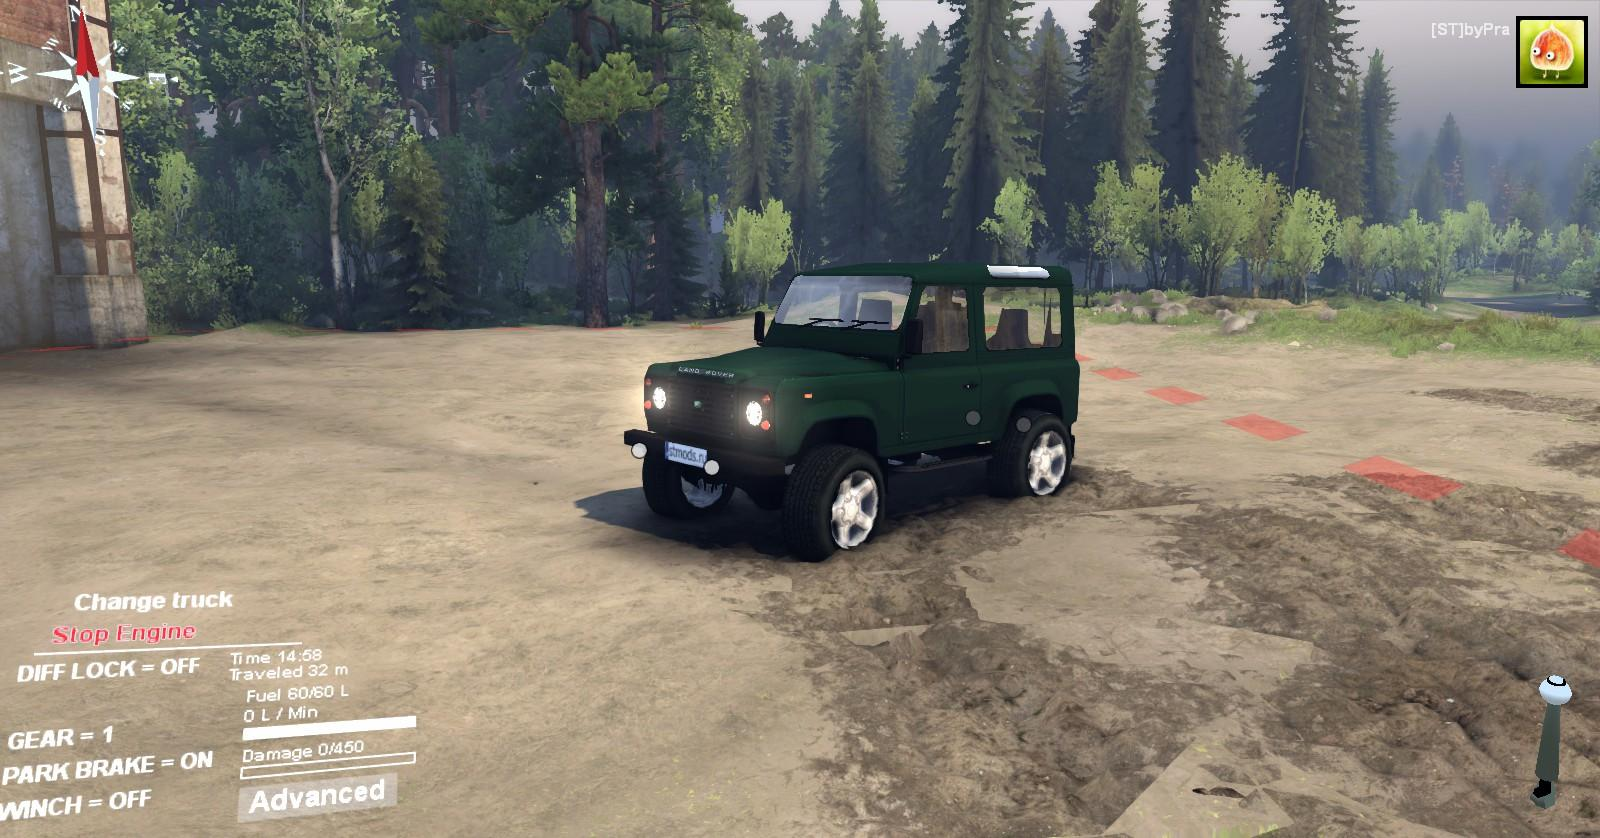 spintires1 - Newest SpinTires mods - SPINTIRES.LT